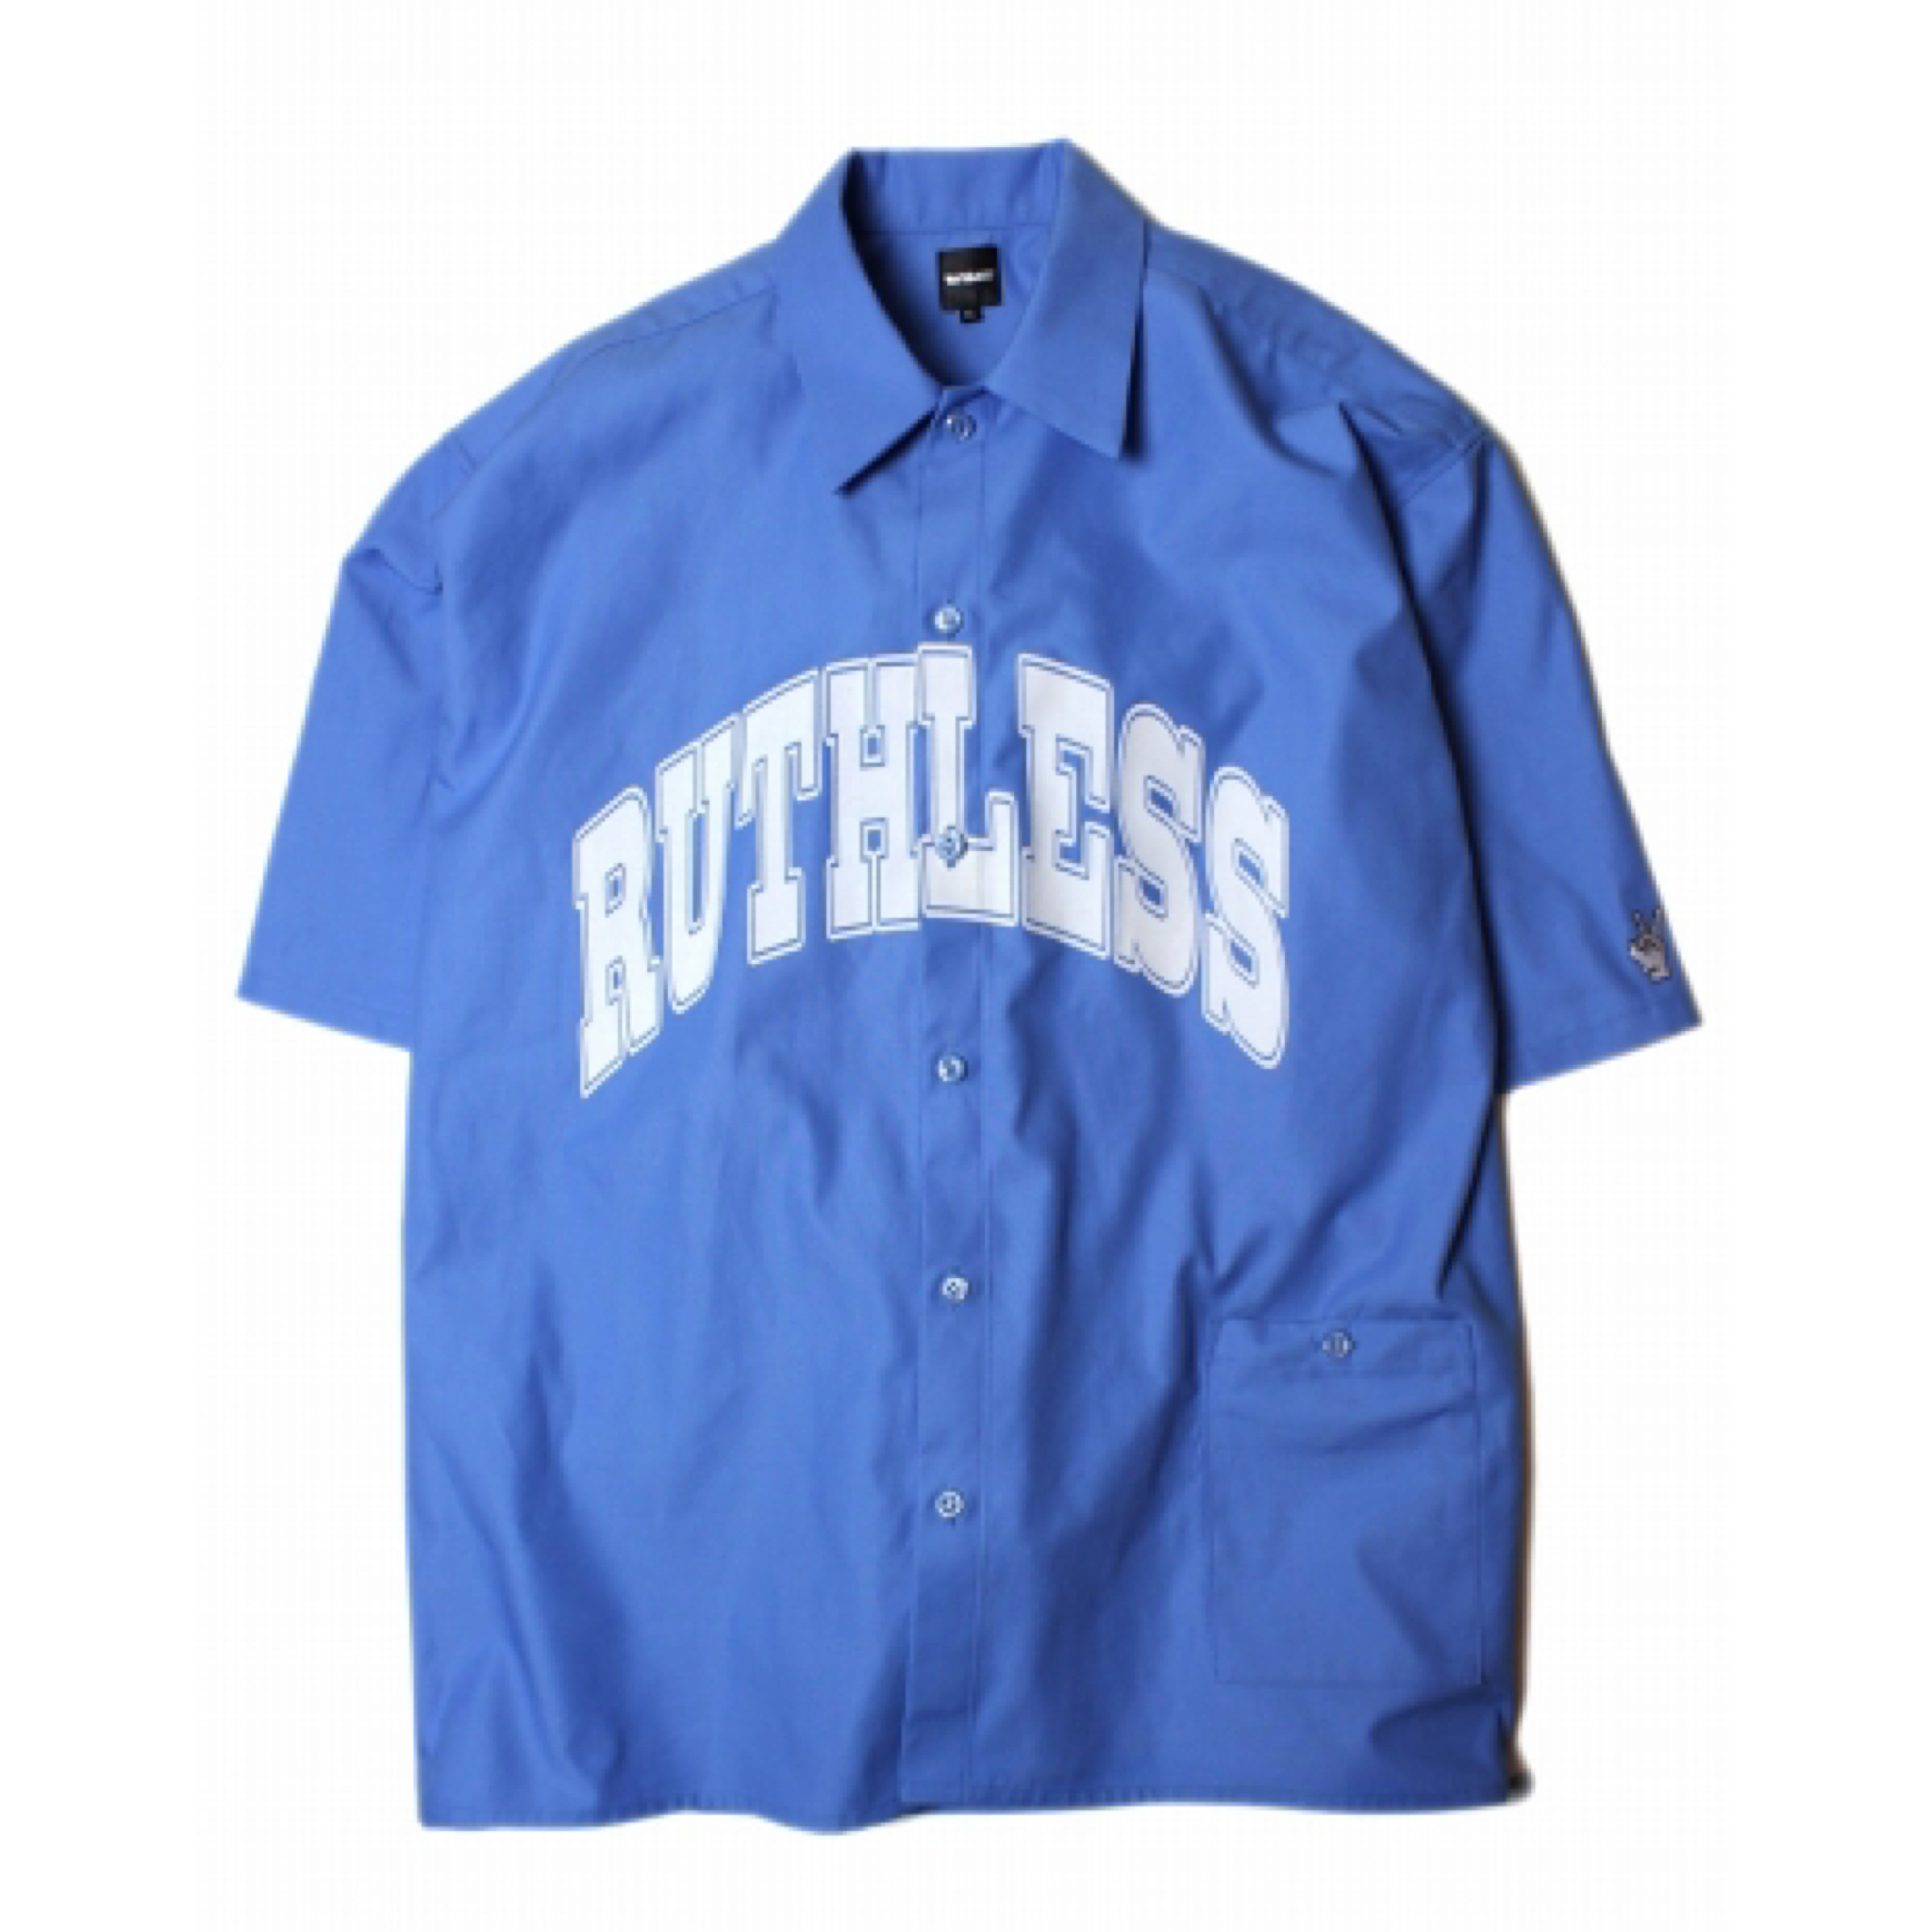 RUTHLESS #College Logo S/S Shirts Sax